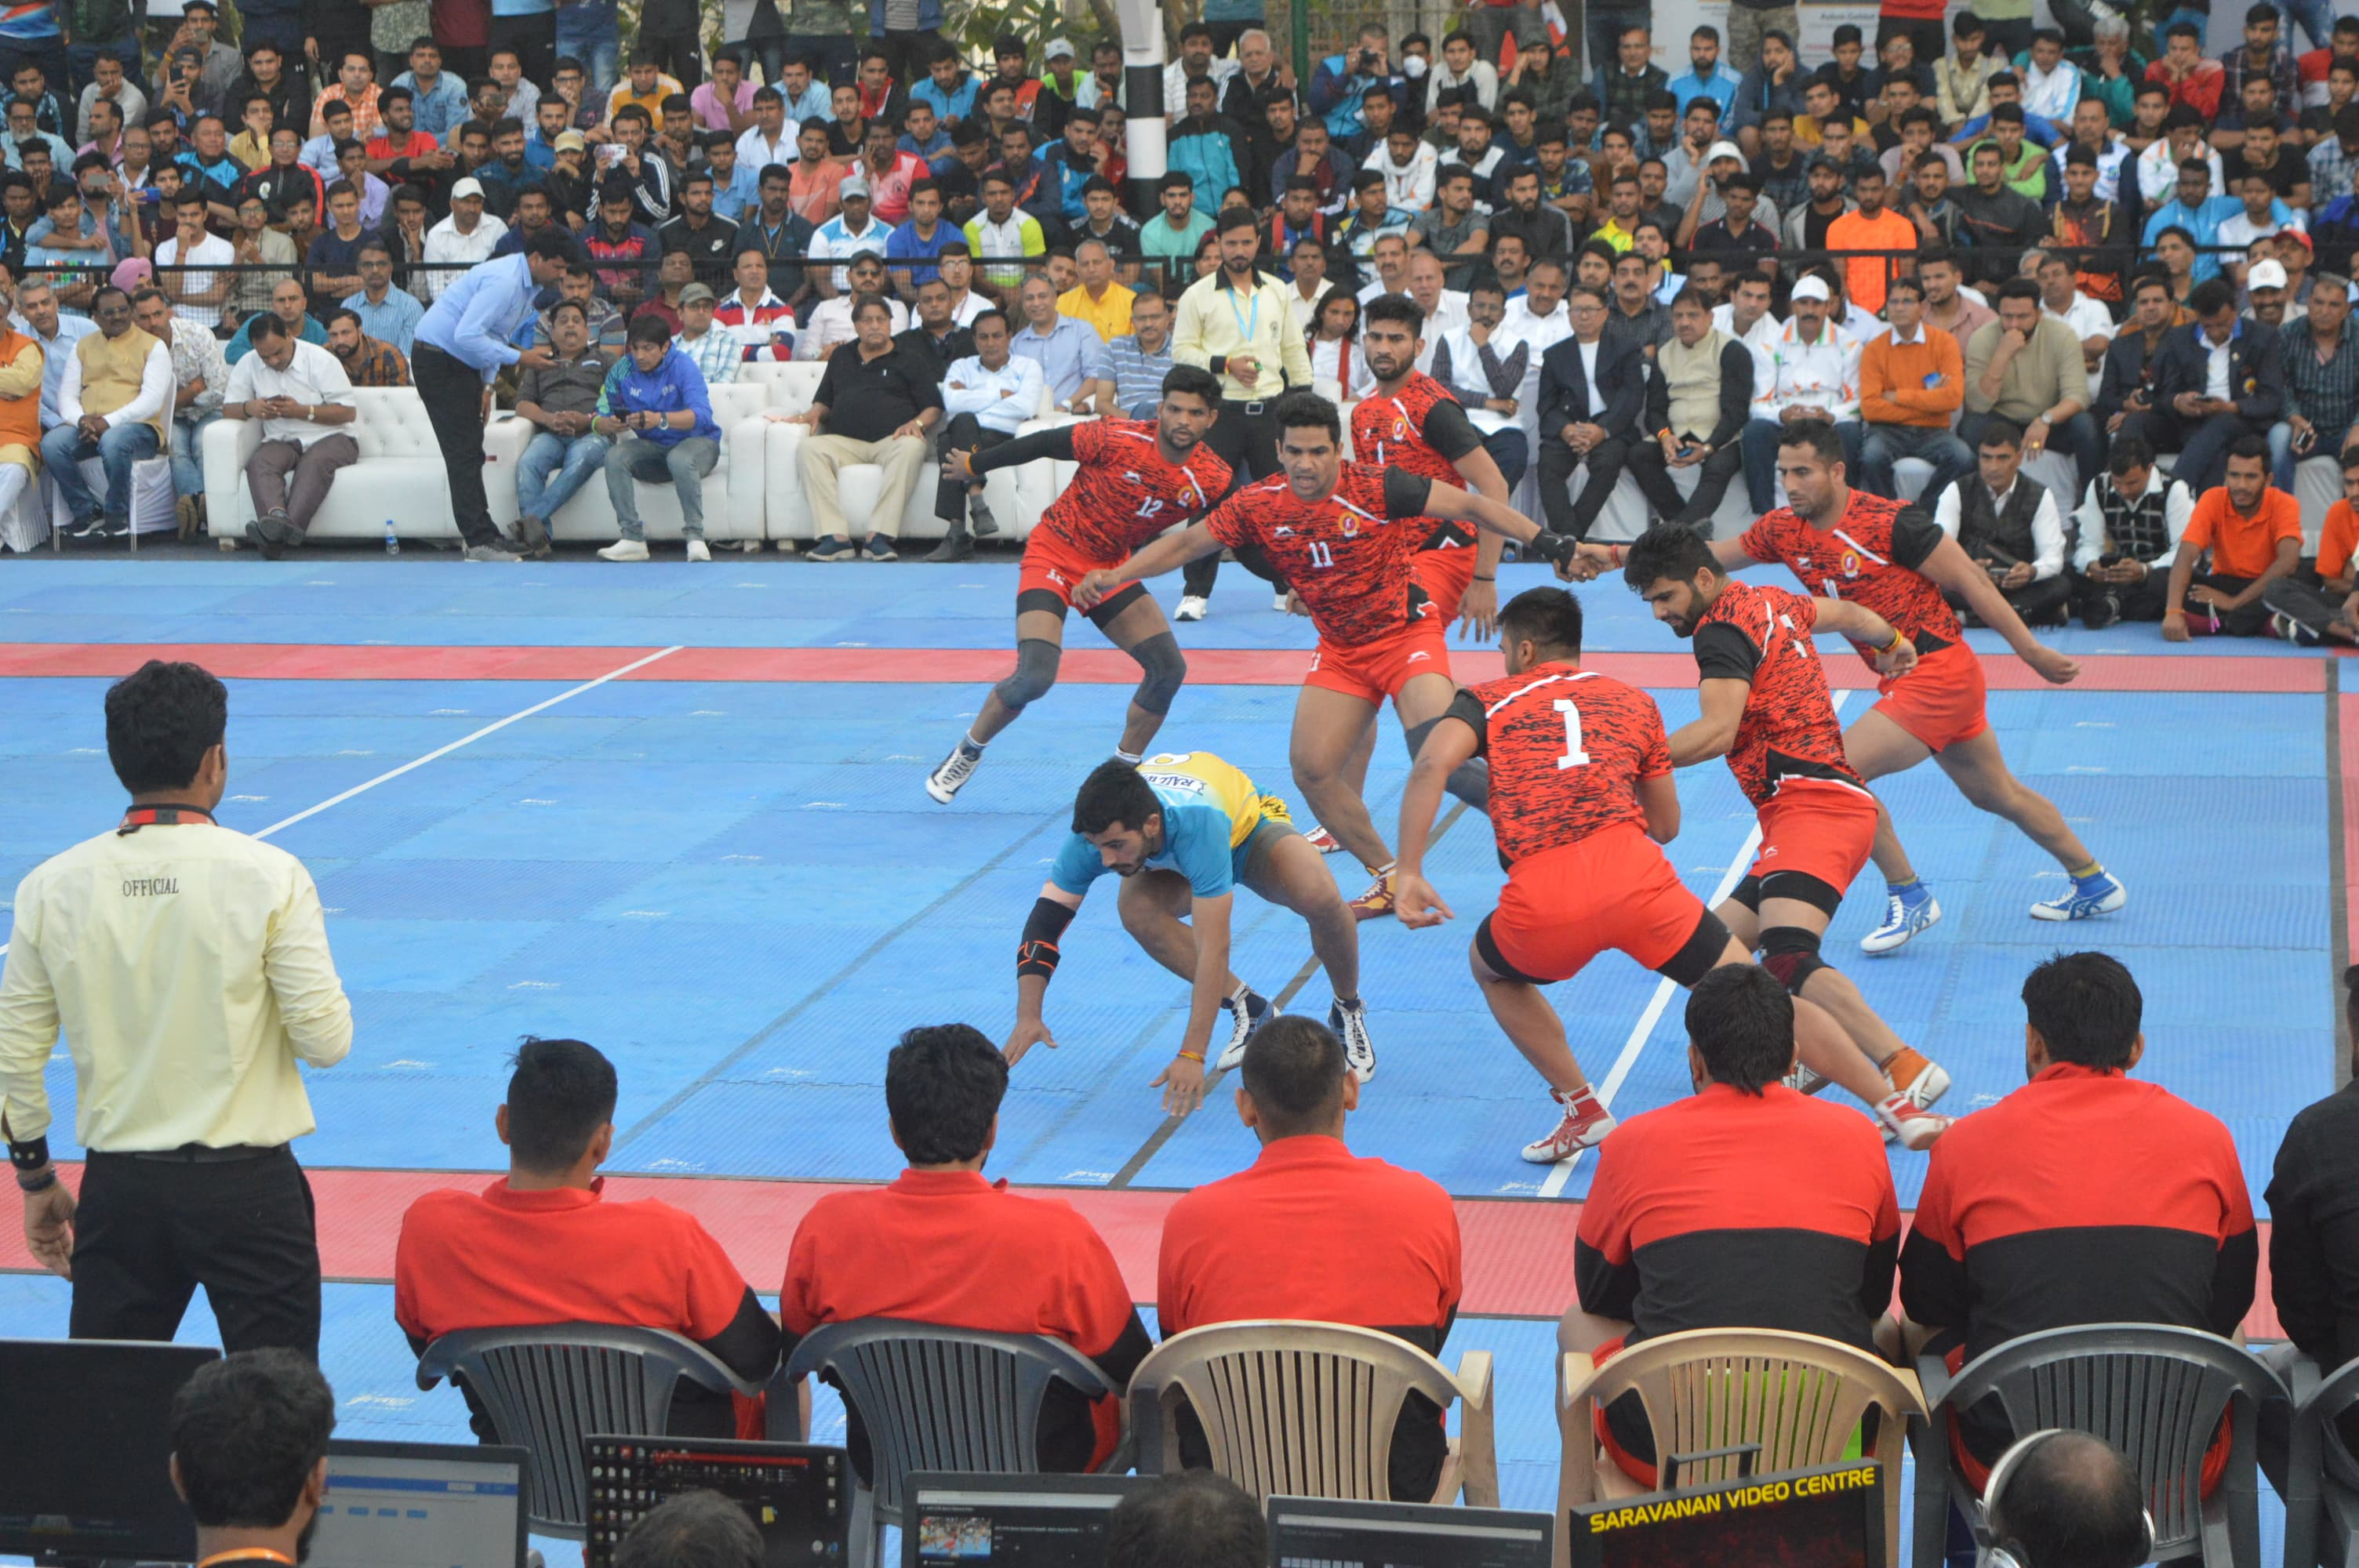 Vikas Khandola performing a successful raid